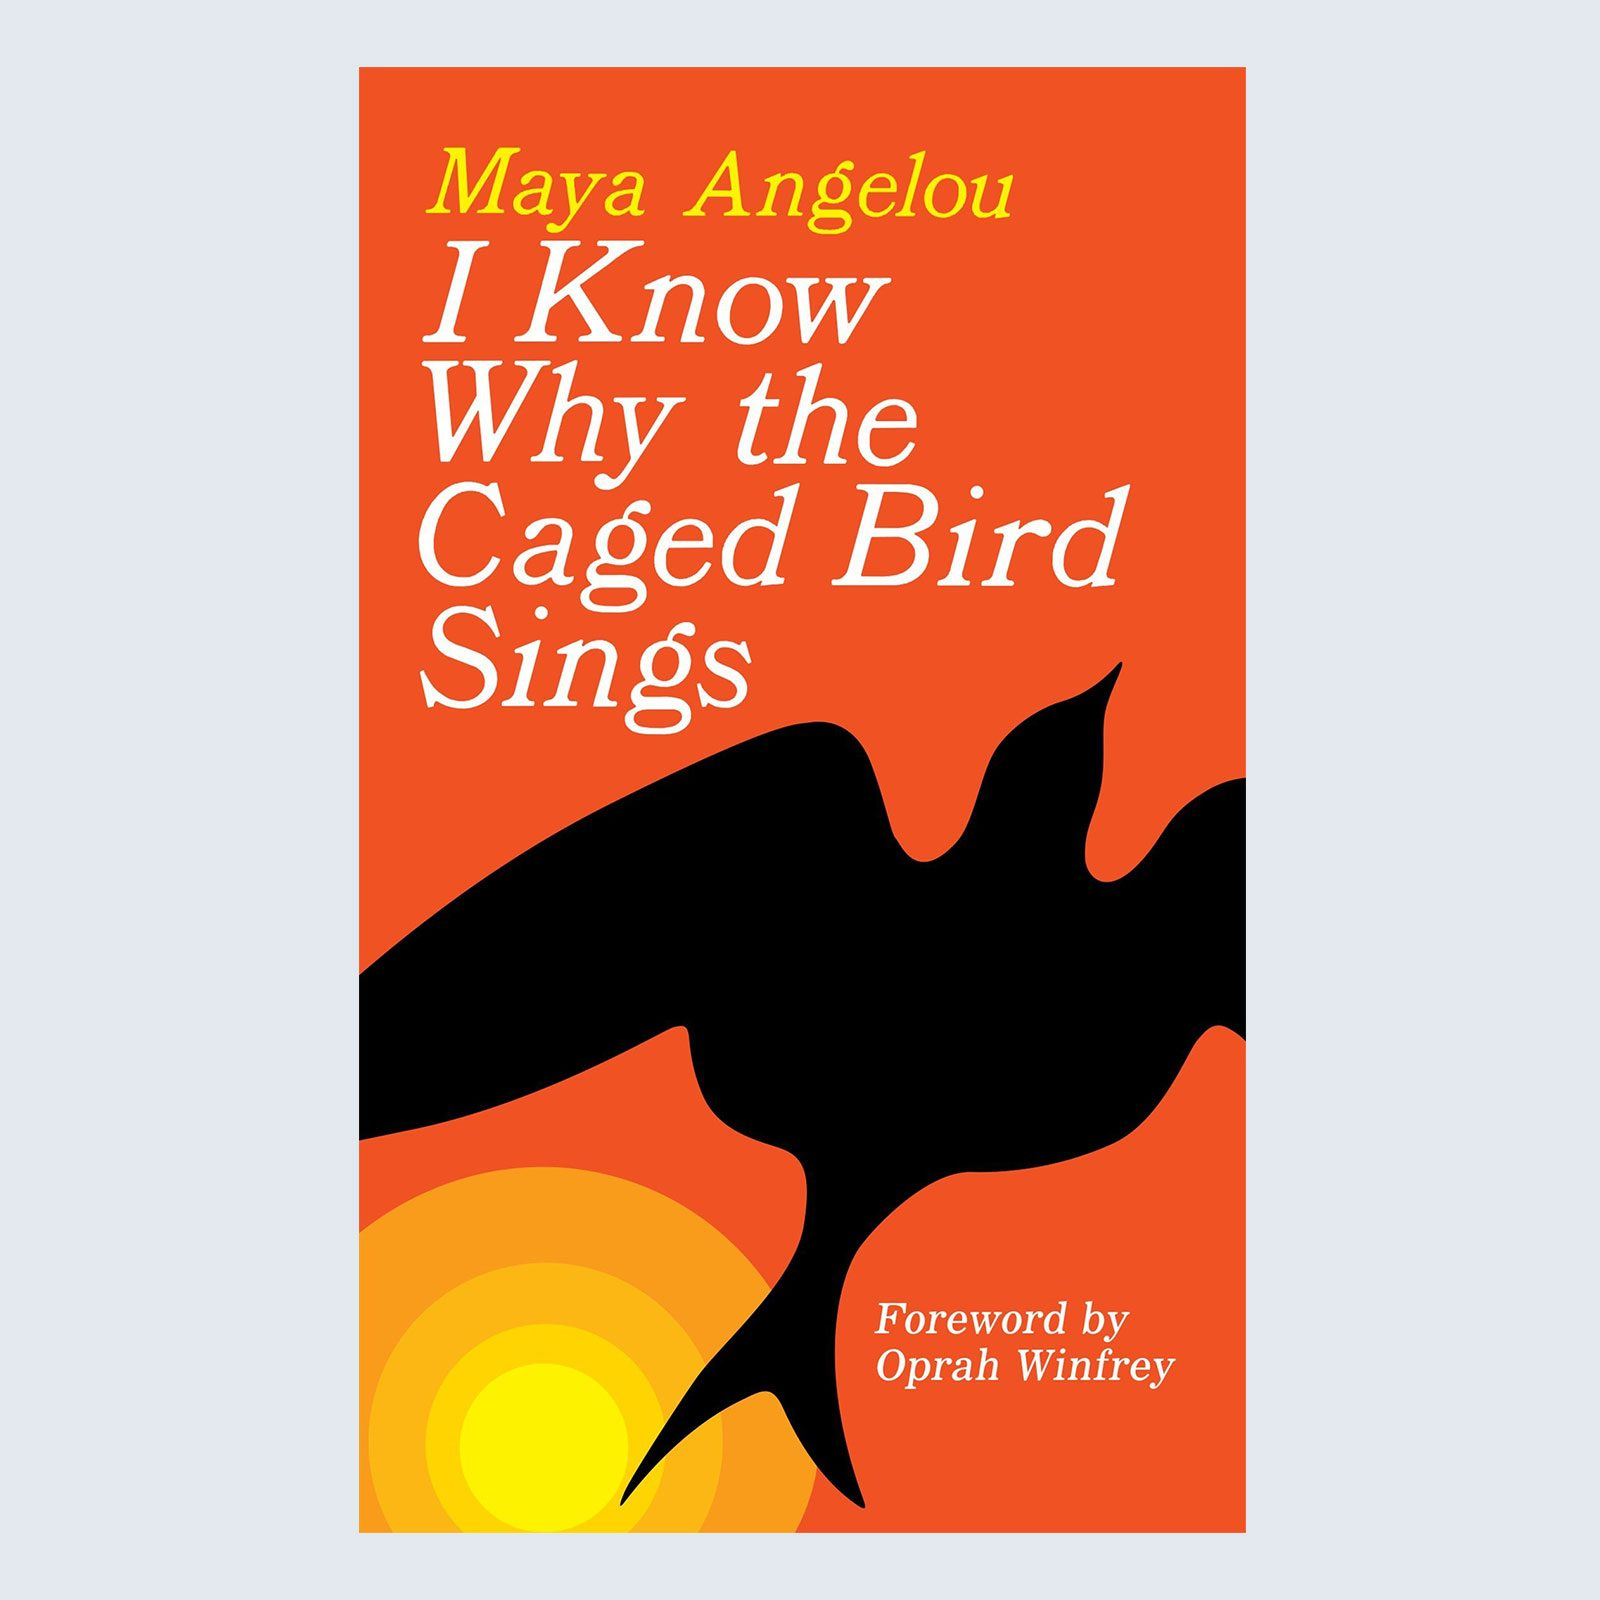 I Know Why the Caged Bird Sings byMaya Angelou